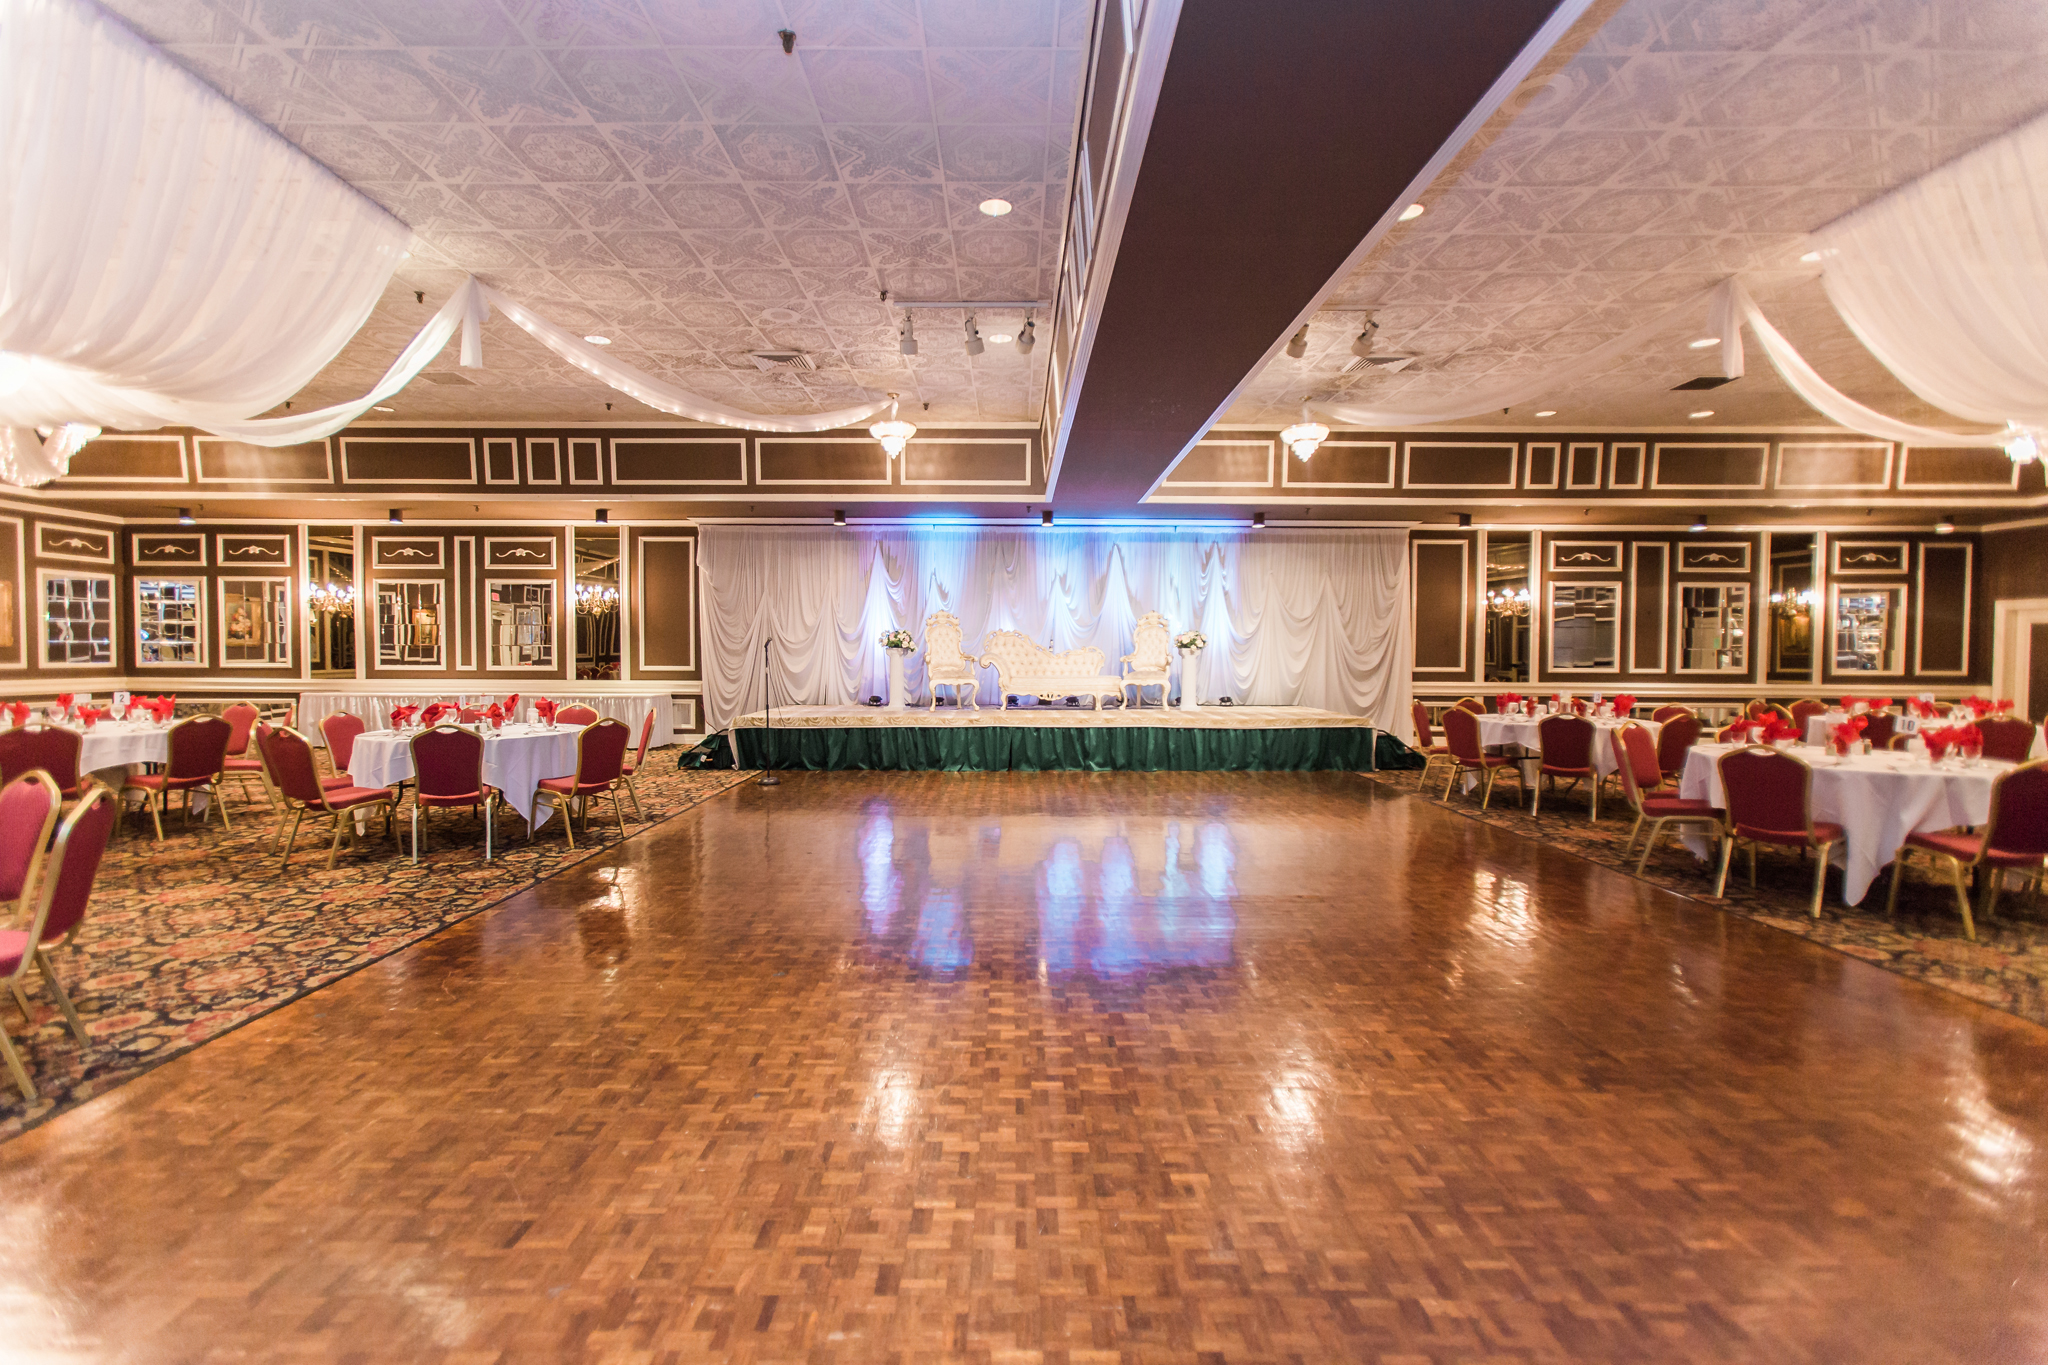 The Dipomat West Banquets